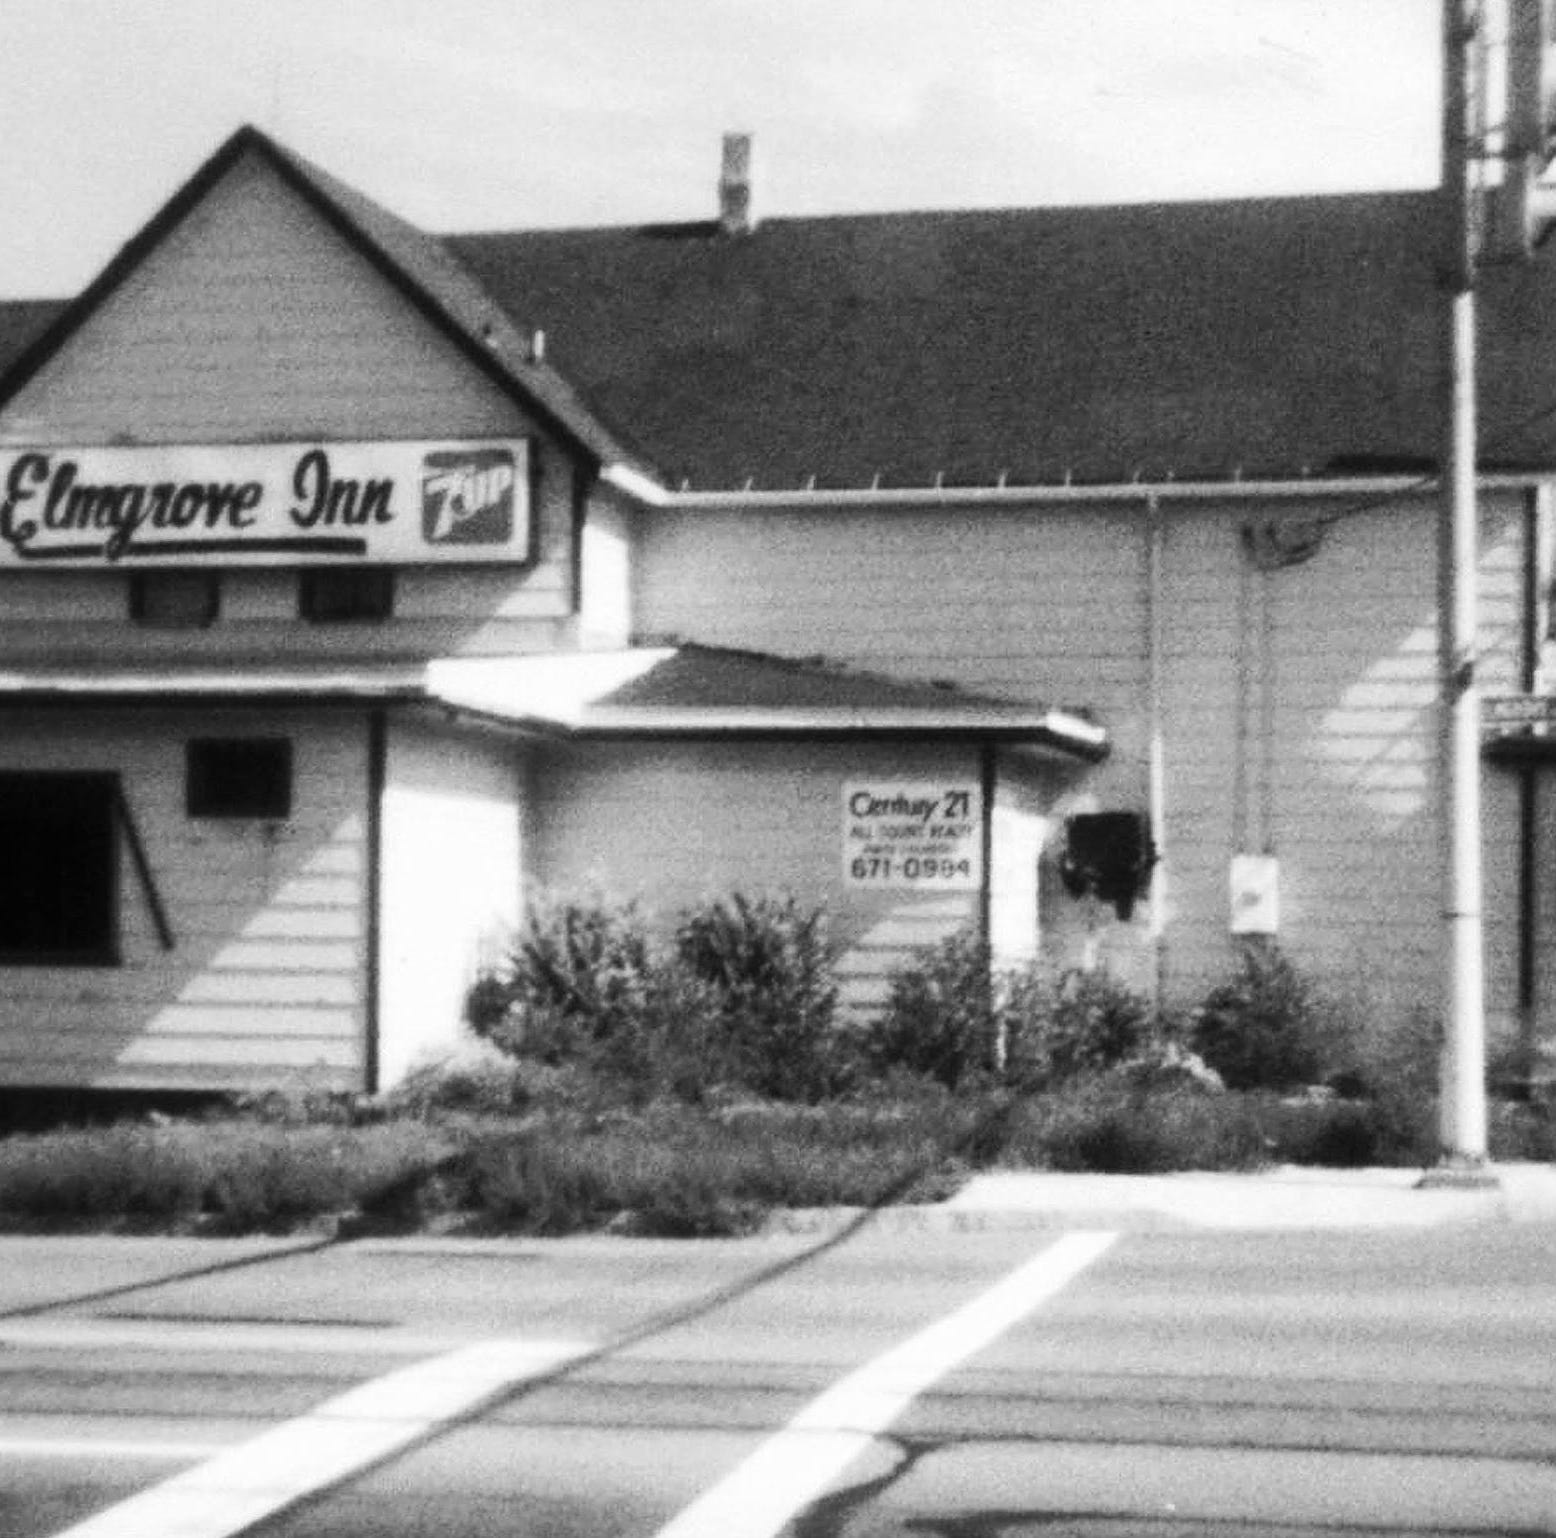 Whatever Happened to ... Elmgrove Inn?